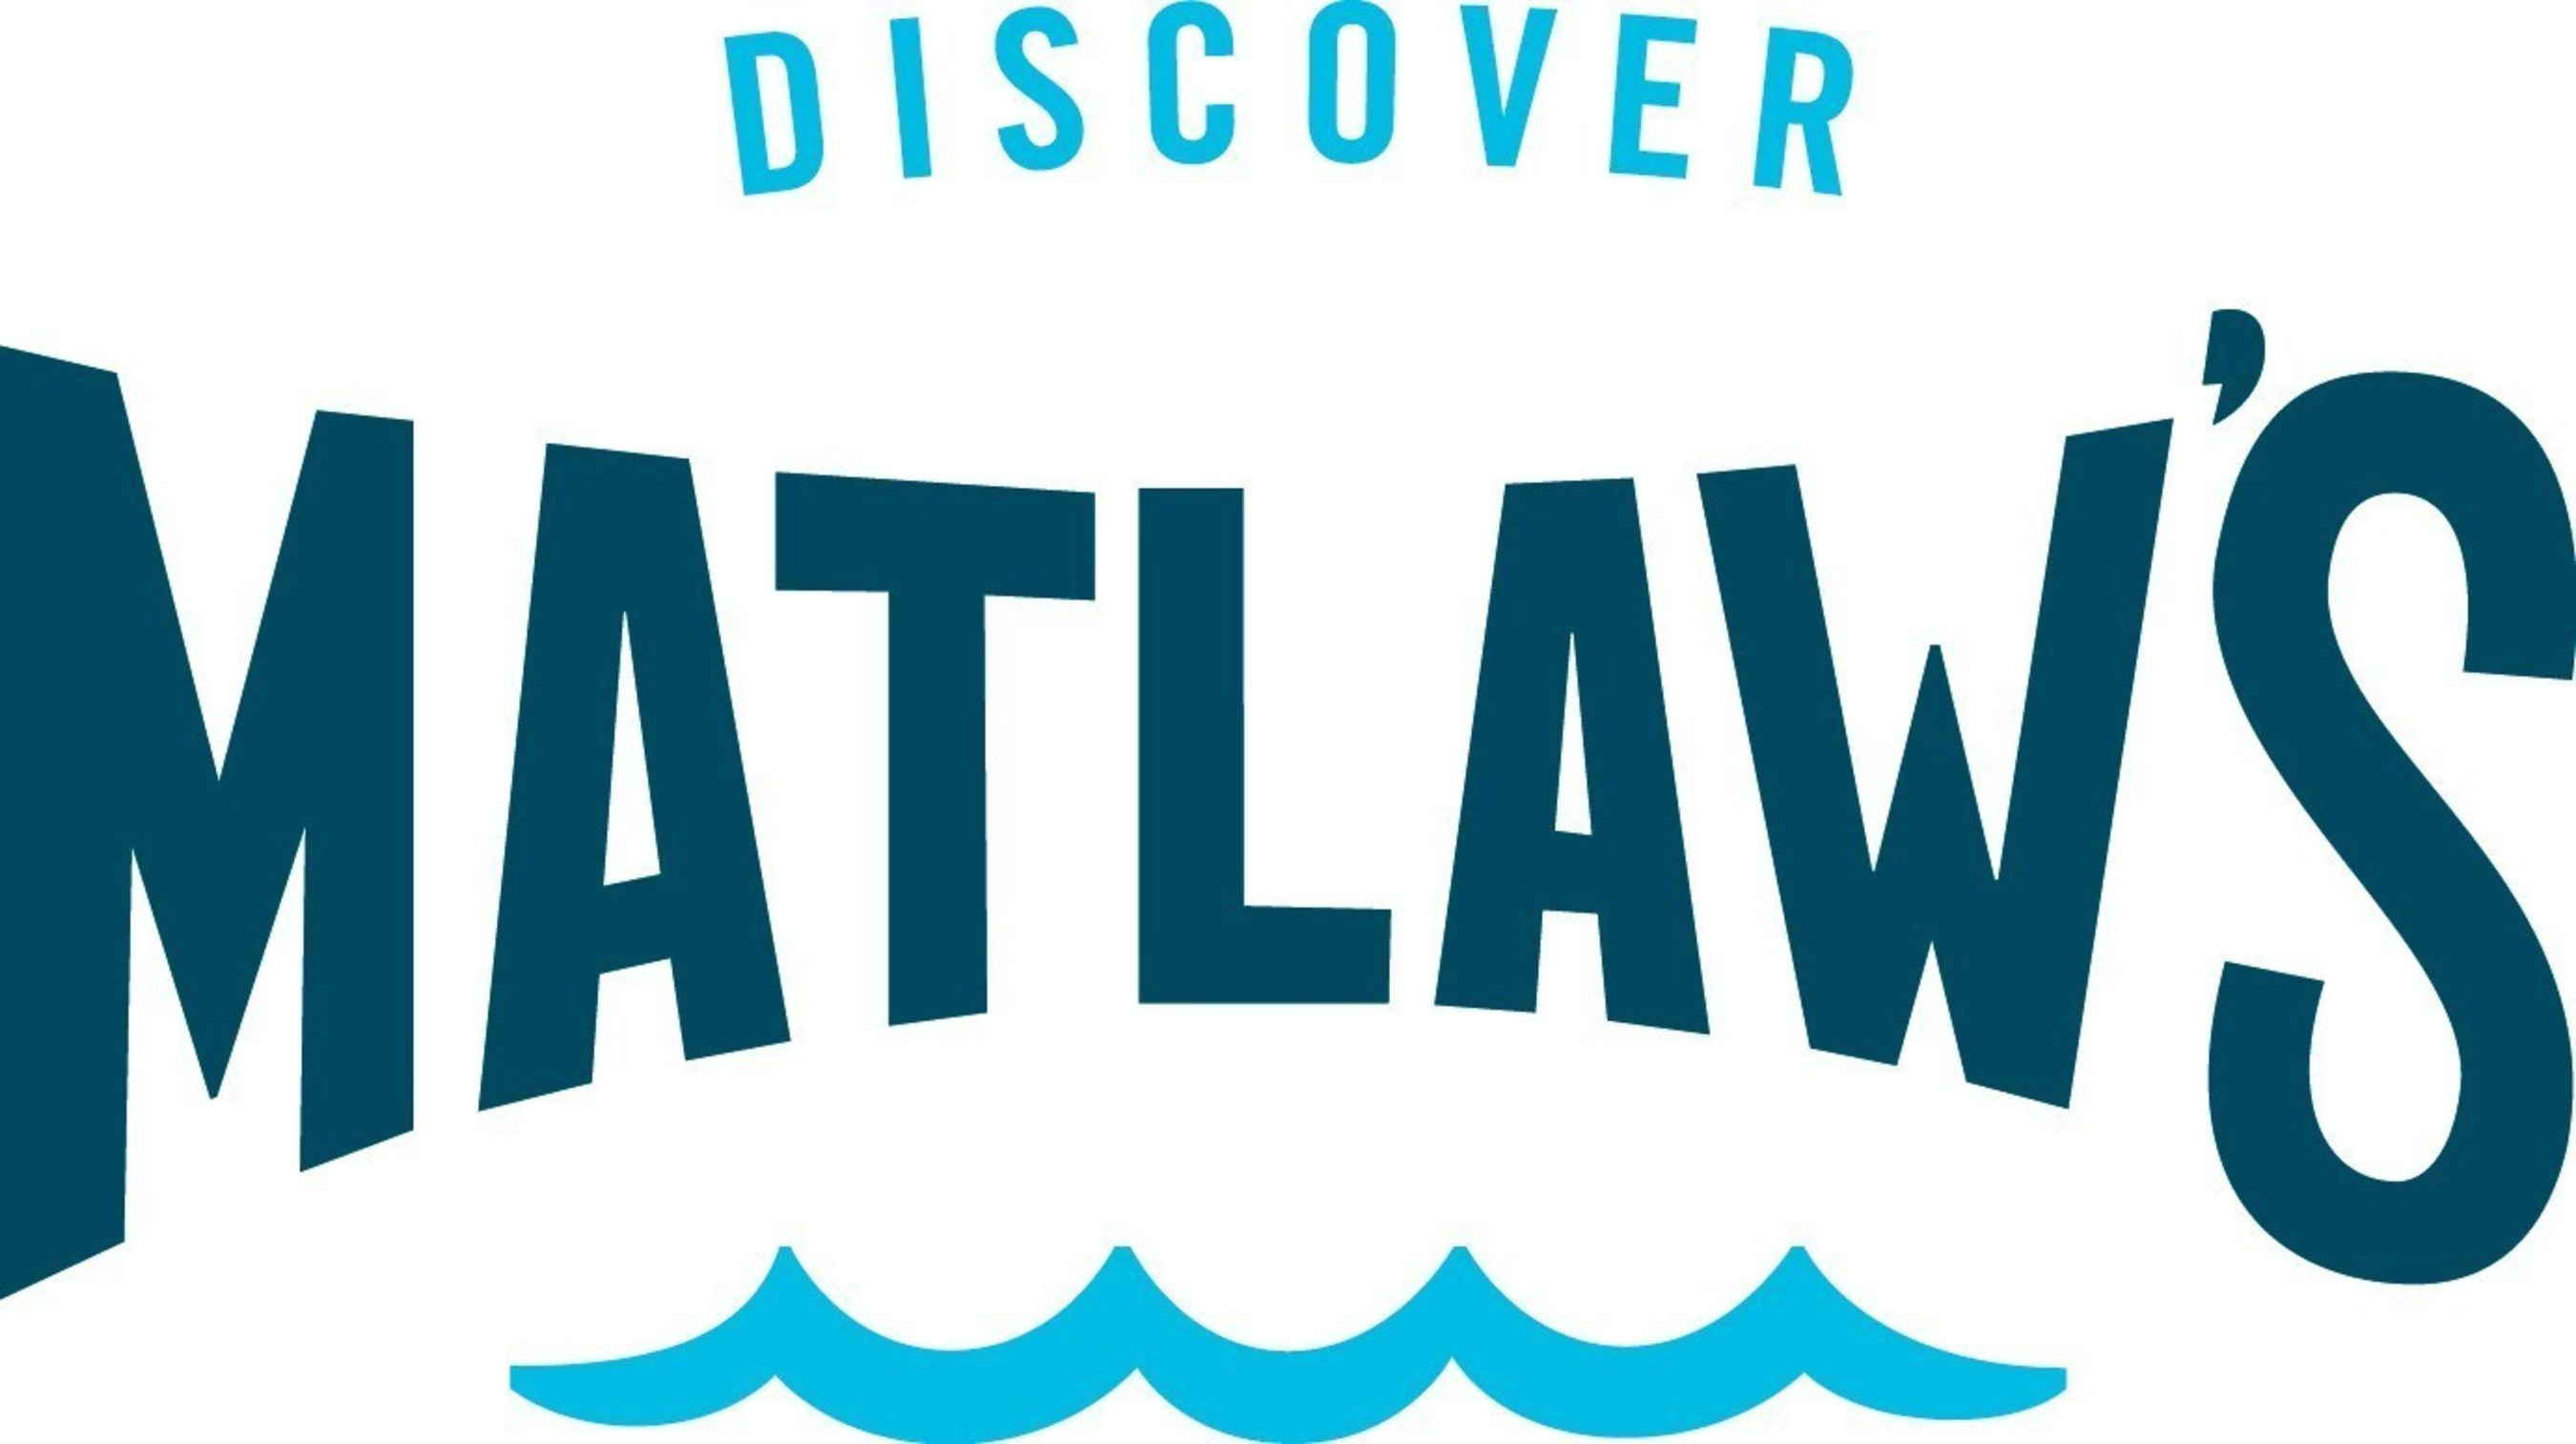 Every bite of Matlaw's seafood feeds your passion for discovery. www.matlaws.com